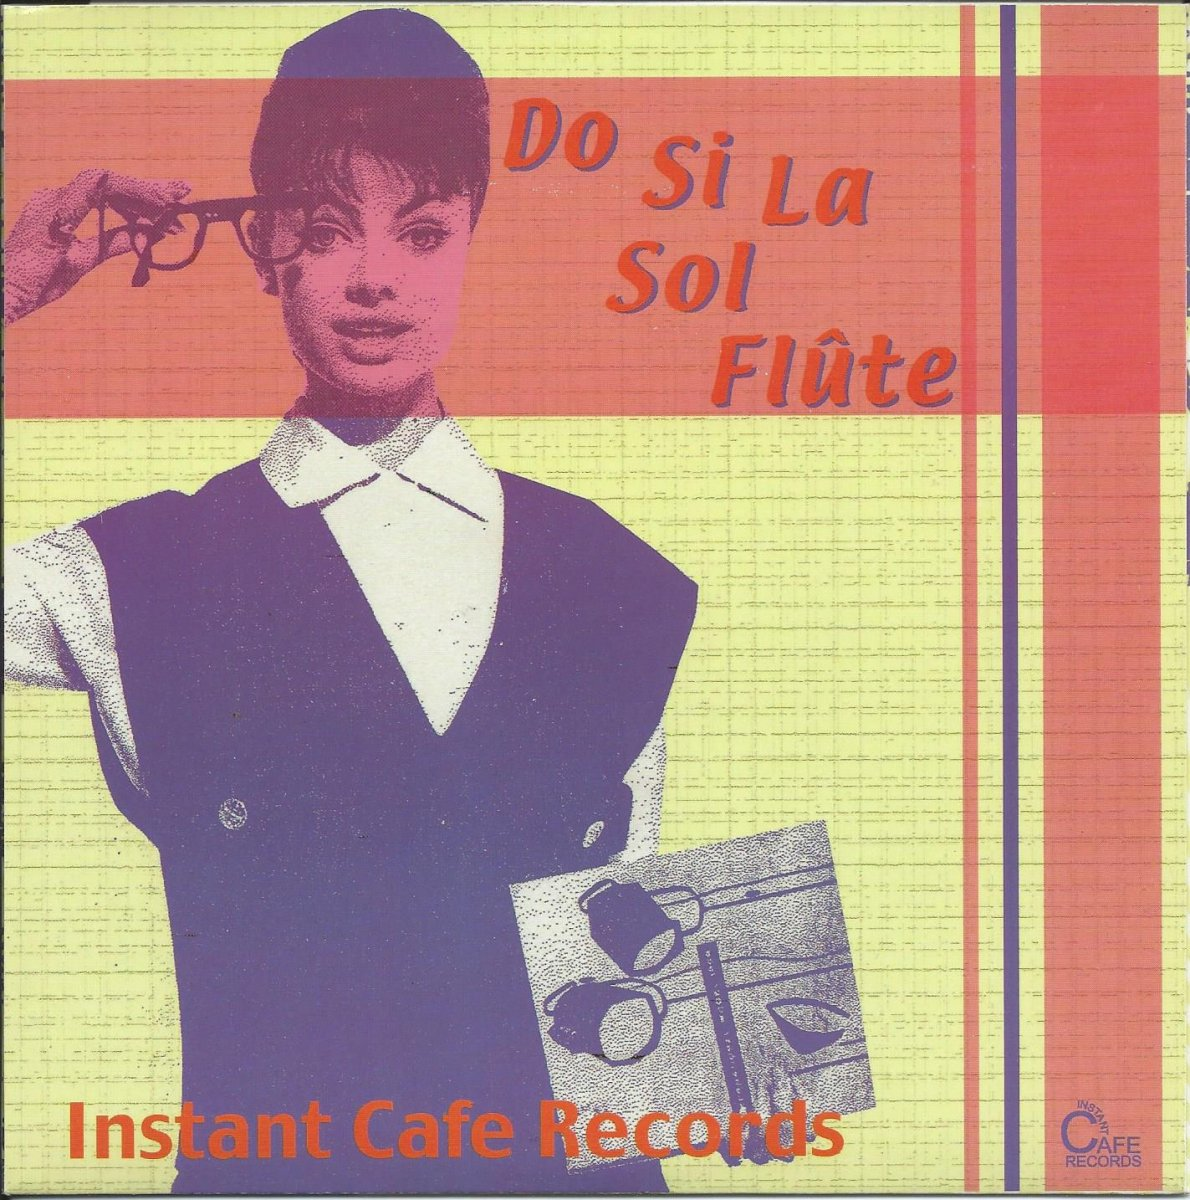 INSTANT CAFE RECORDS / DO SI LA SOL FLUTE / DRIVING ME BACKWARDS (7